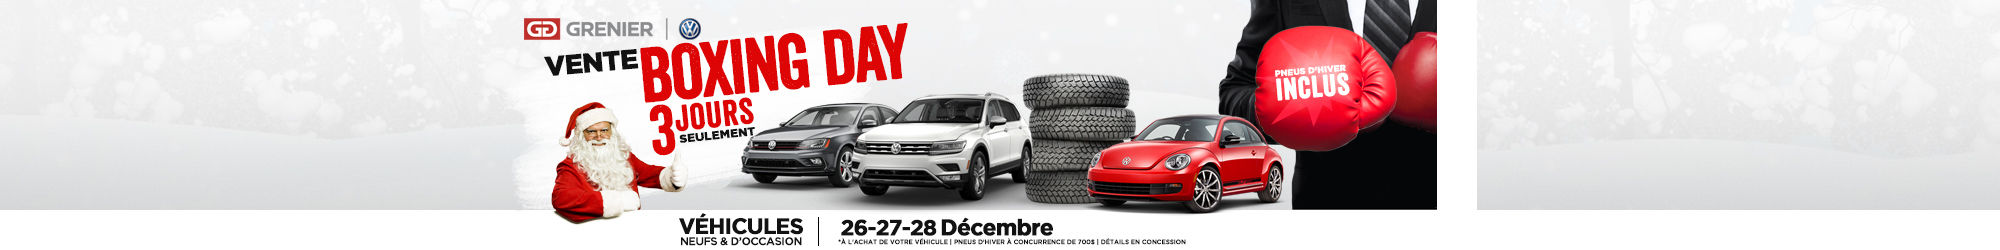 Vente boxing day 3 jours seulement